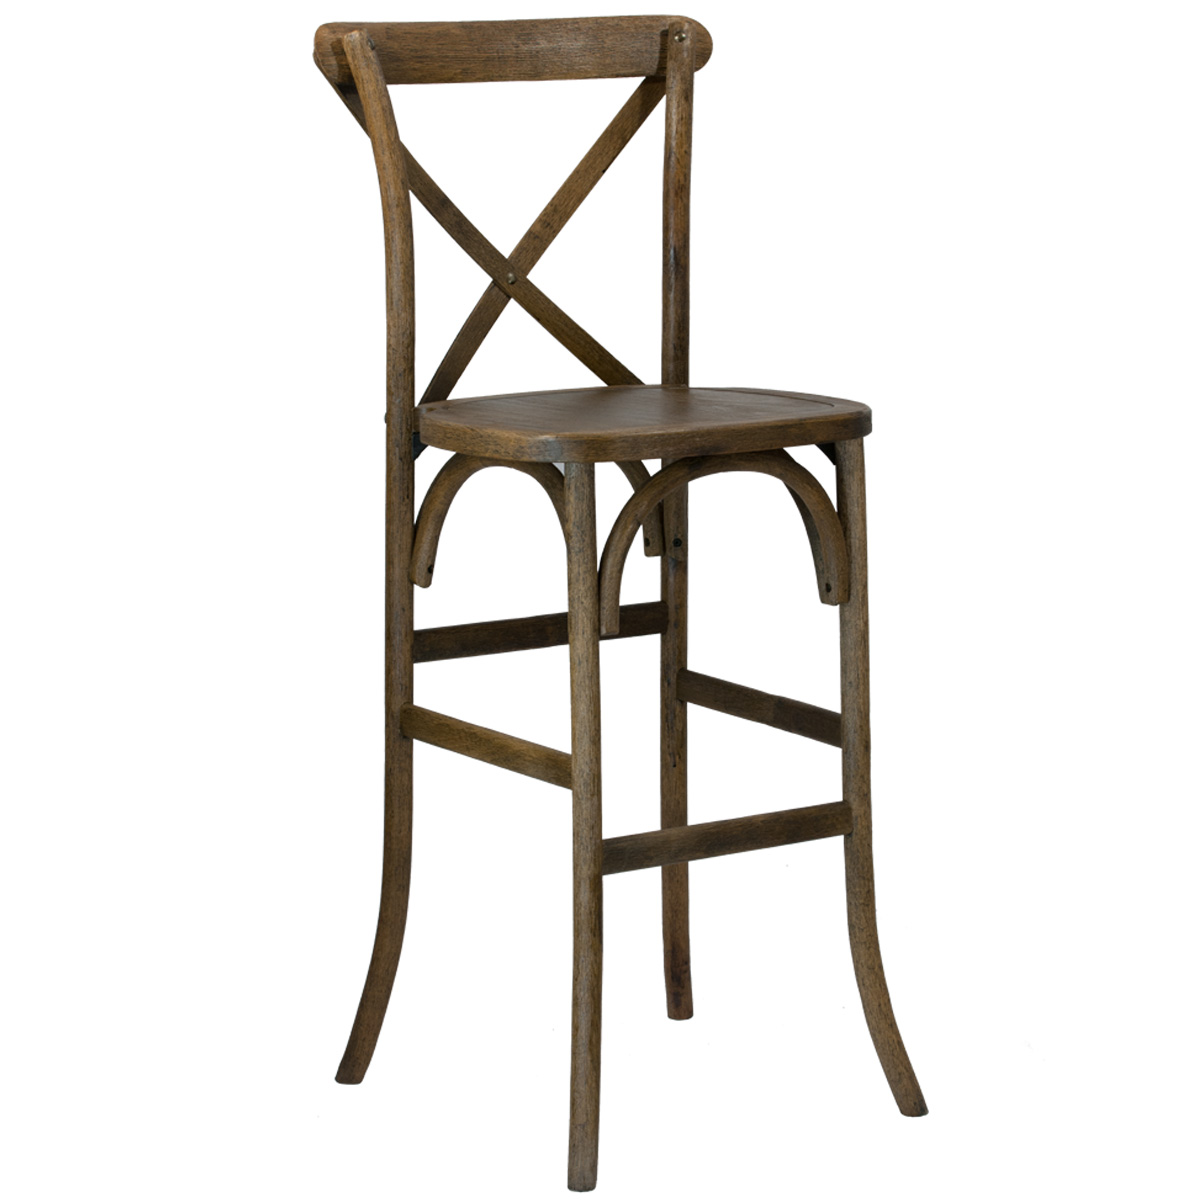 28 Barstools Cross Back Barstool